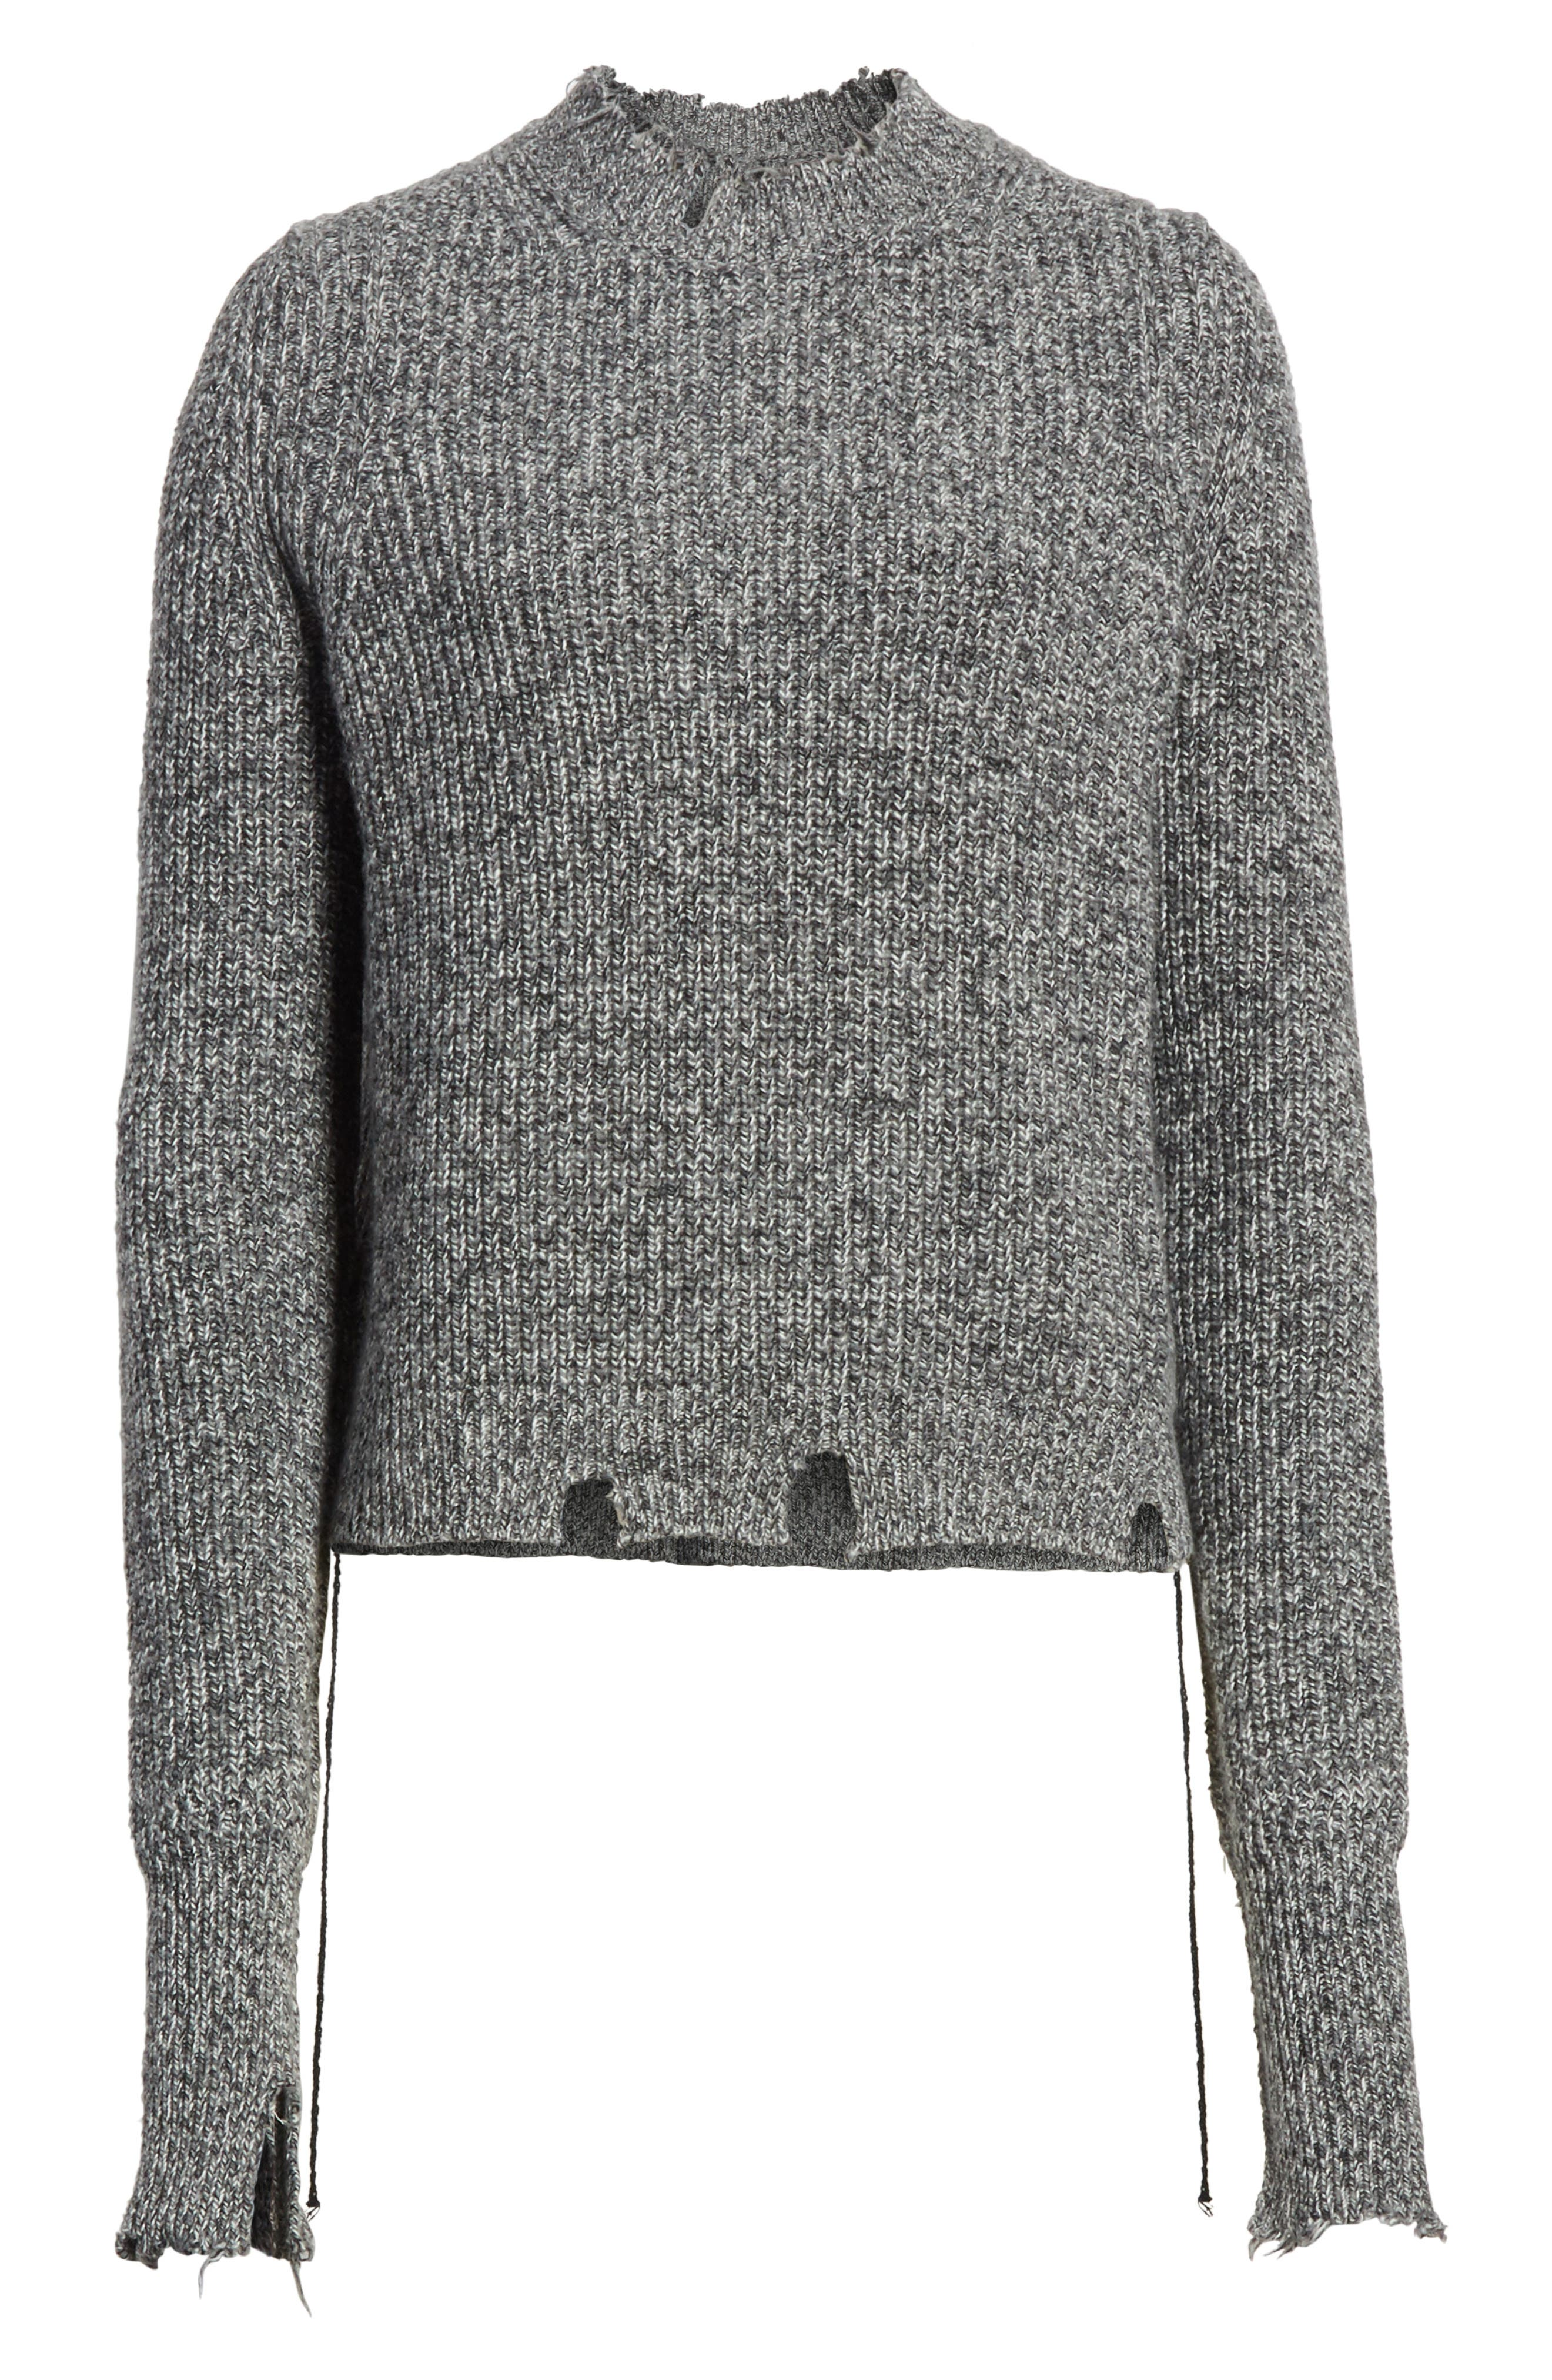 Grunge Marl Sweater,                             Alternate thumbnail 6, color,                             Charcoal